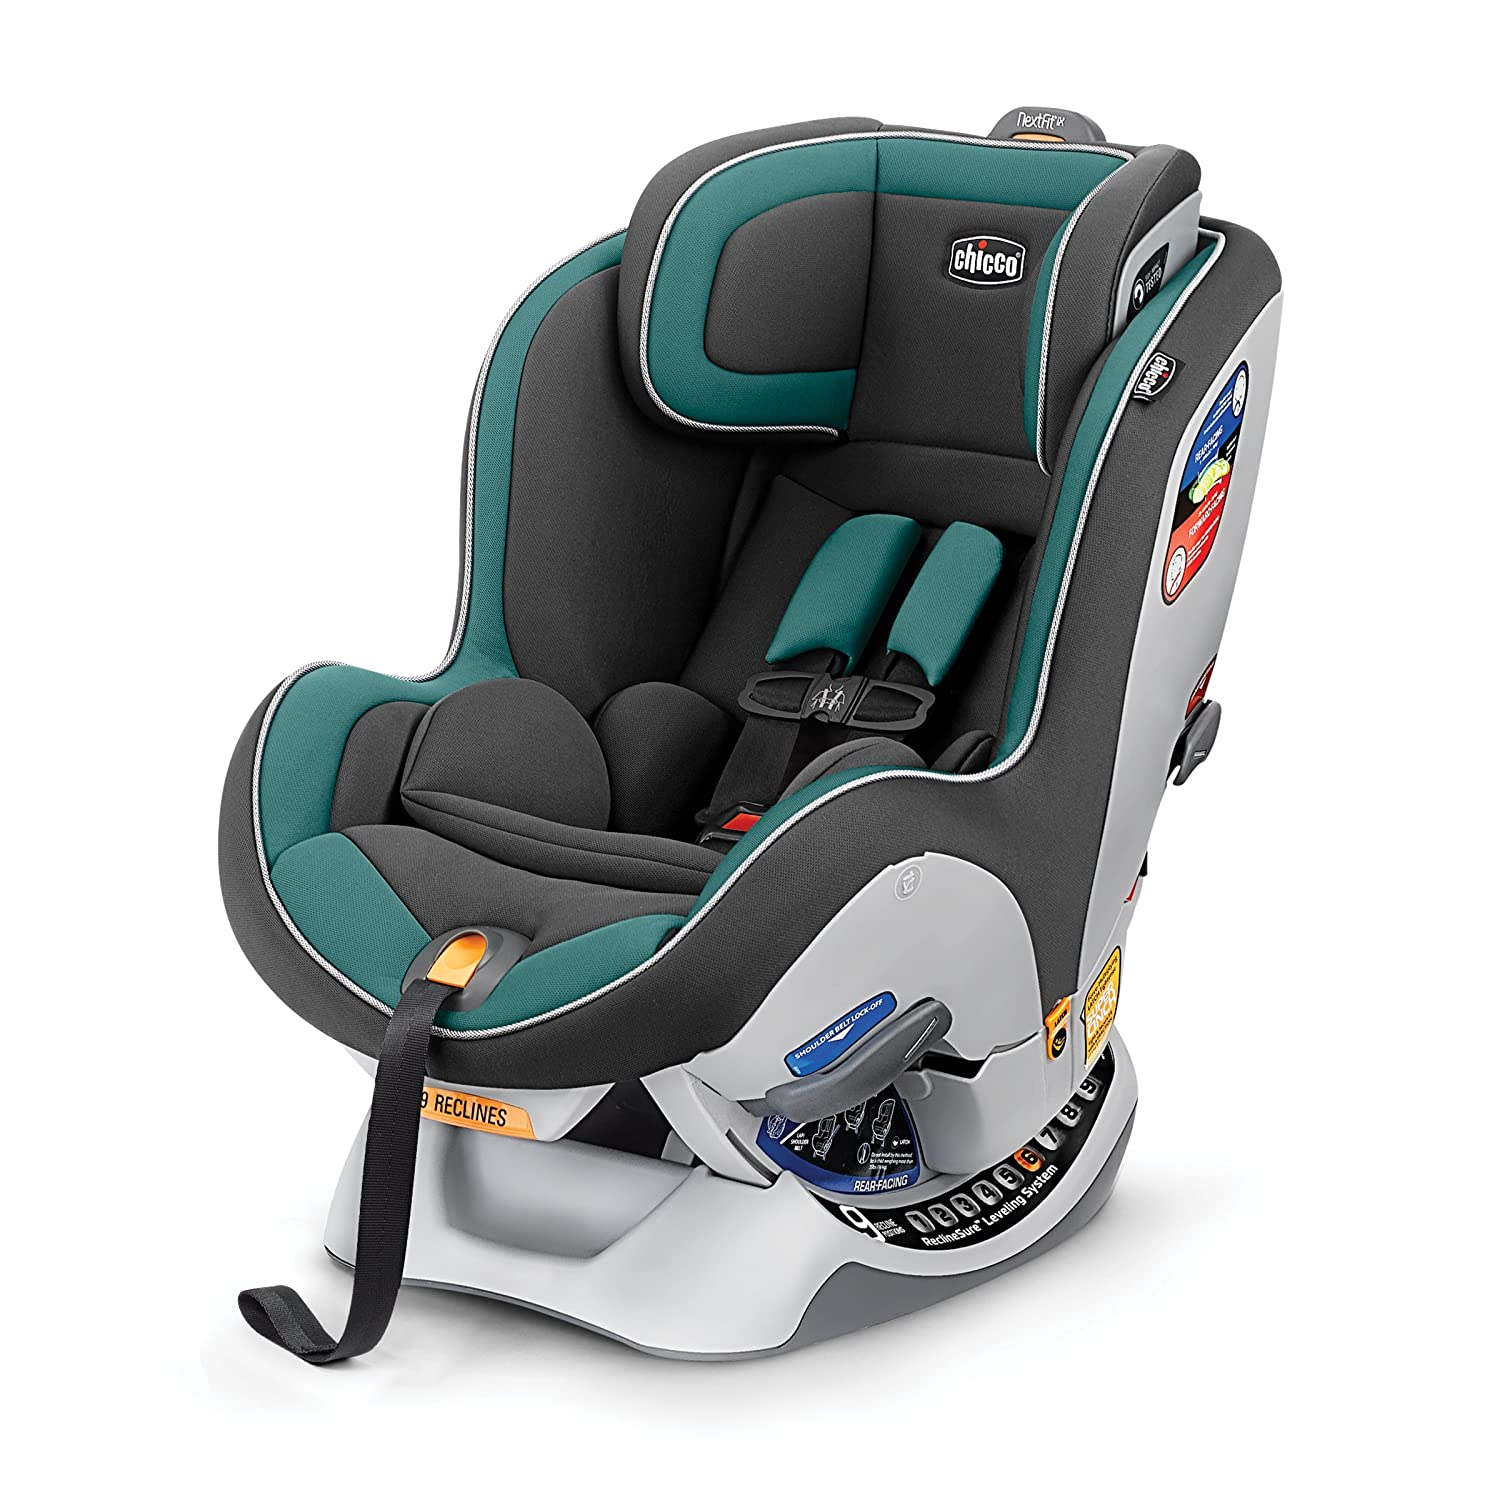 Chicco NextFit iX Convertible Car Seat, Sea Coral 06079776240070